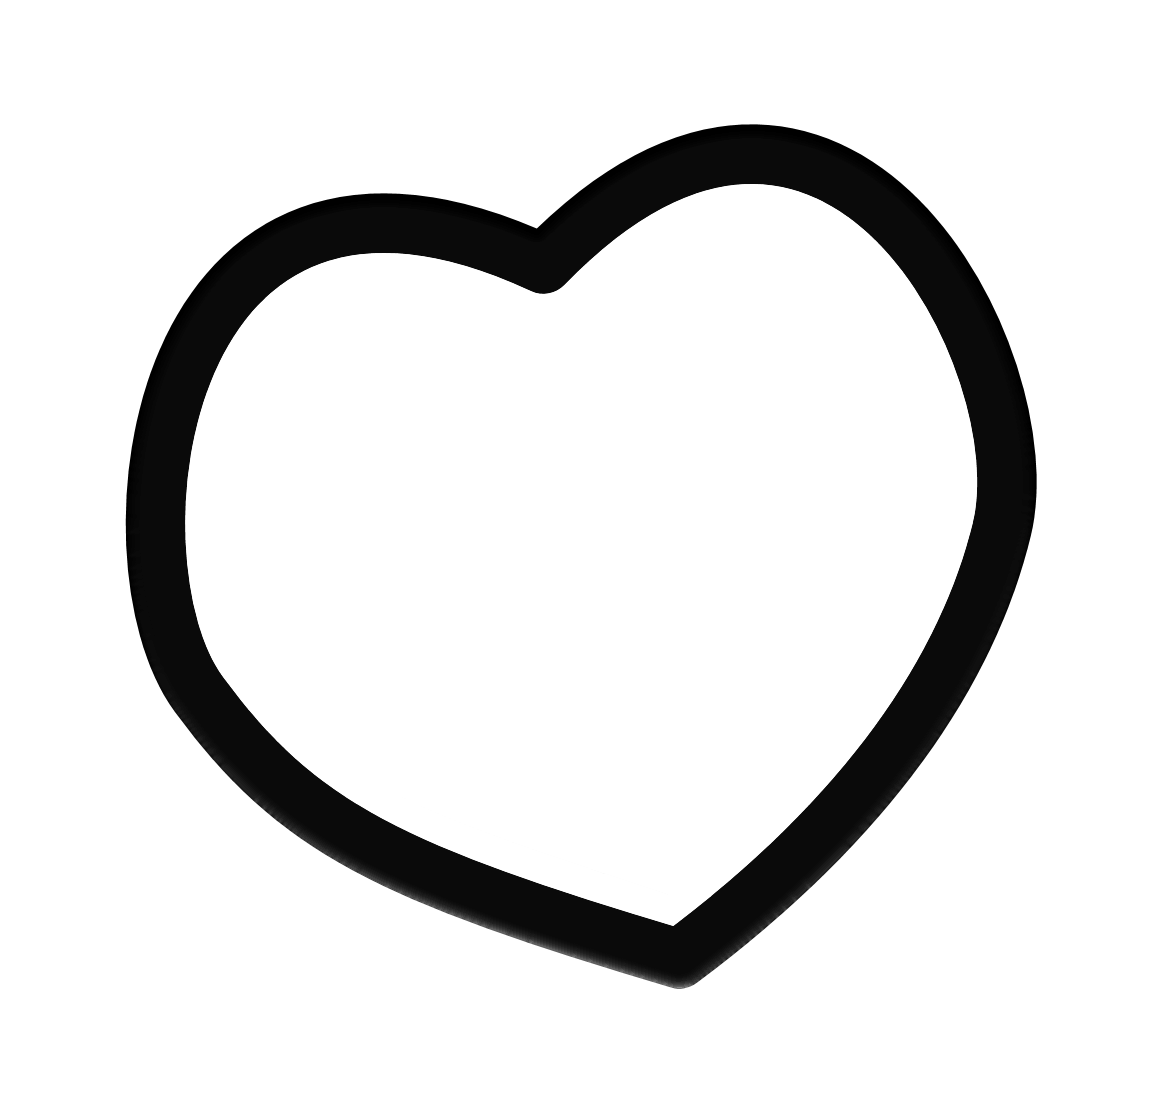 Heart-shaped clipart black and white Panda Black And Frame Clipart